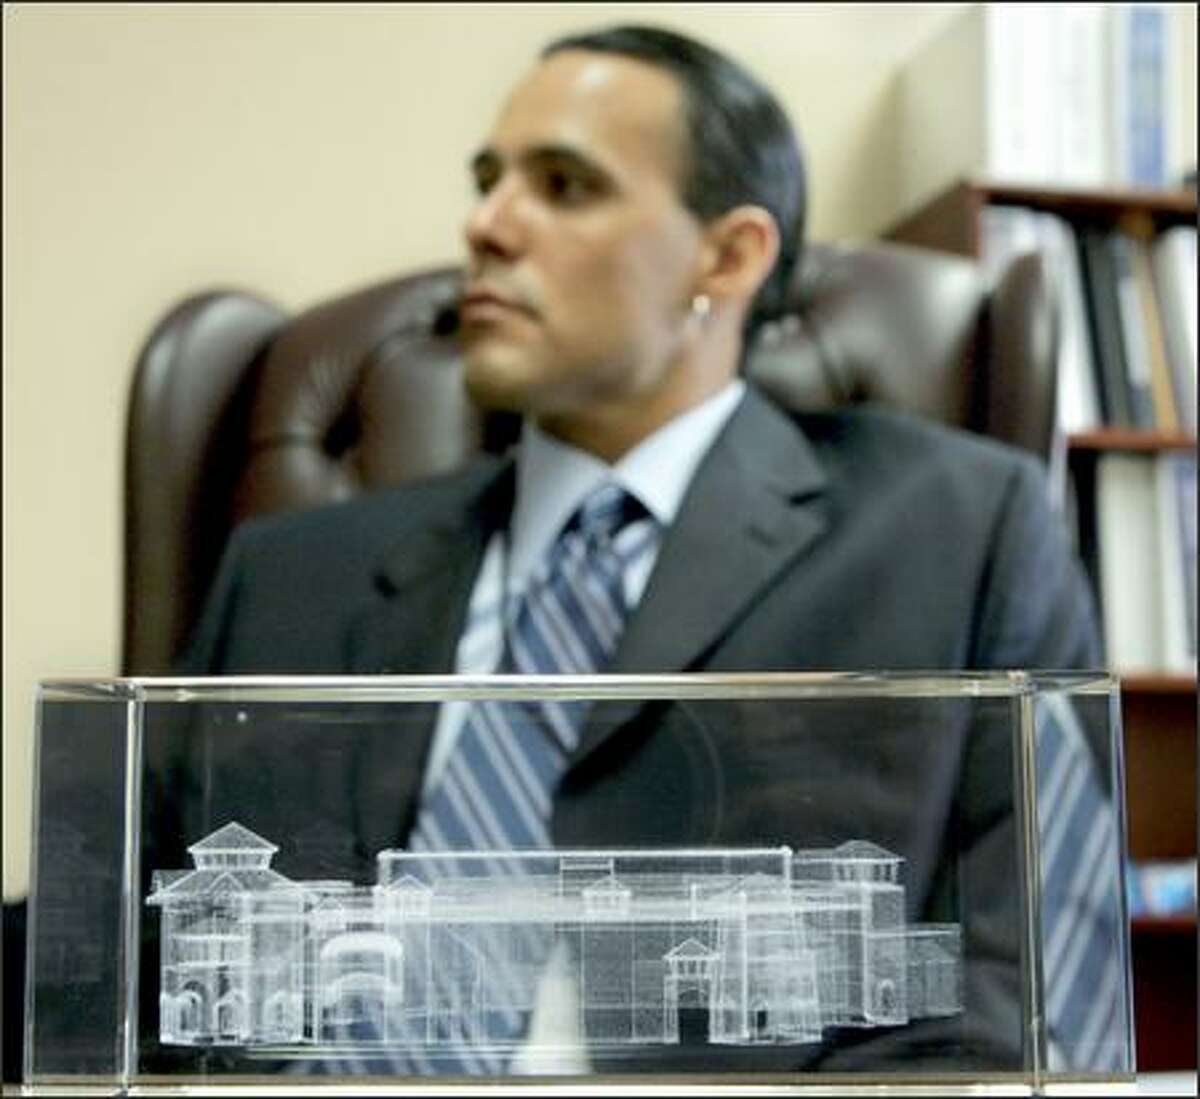 San Manuel Vice Chairman Vincent Duro sits behind a glass etching depicting the San Manuel casino.